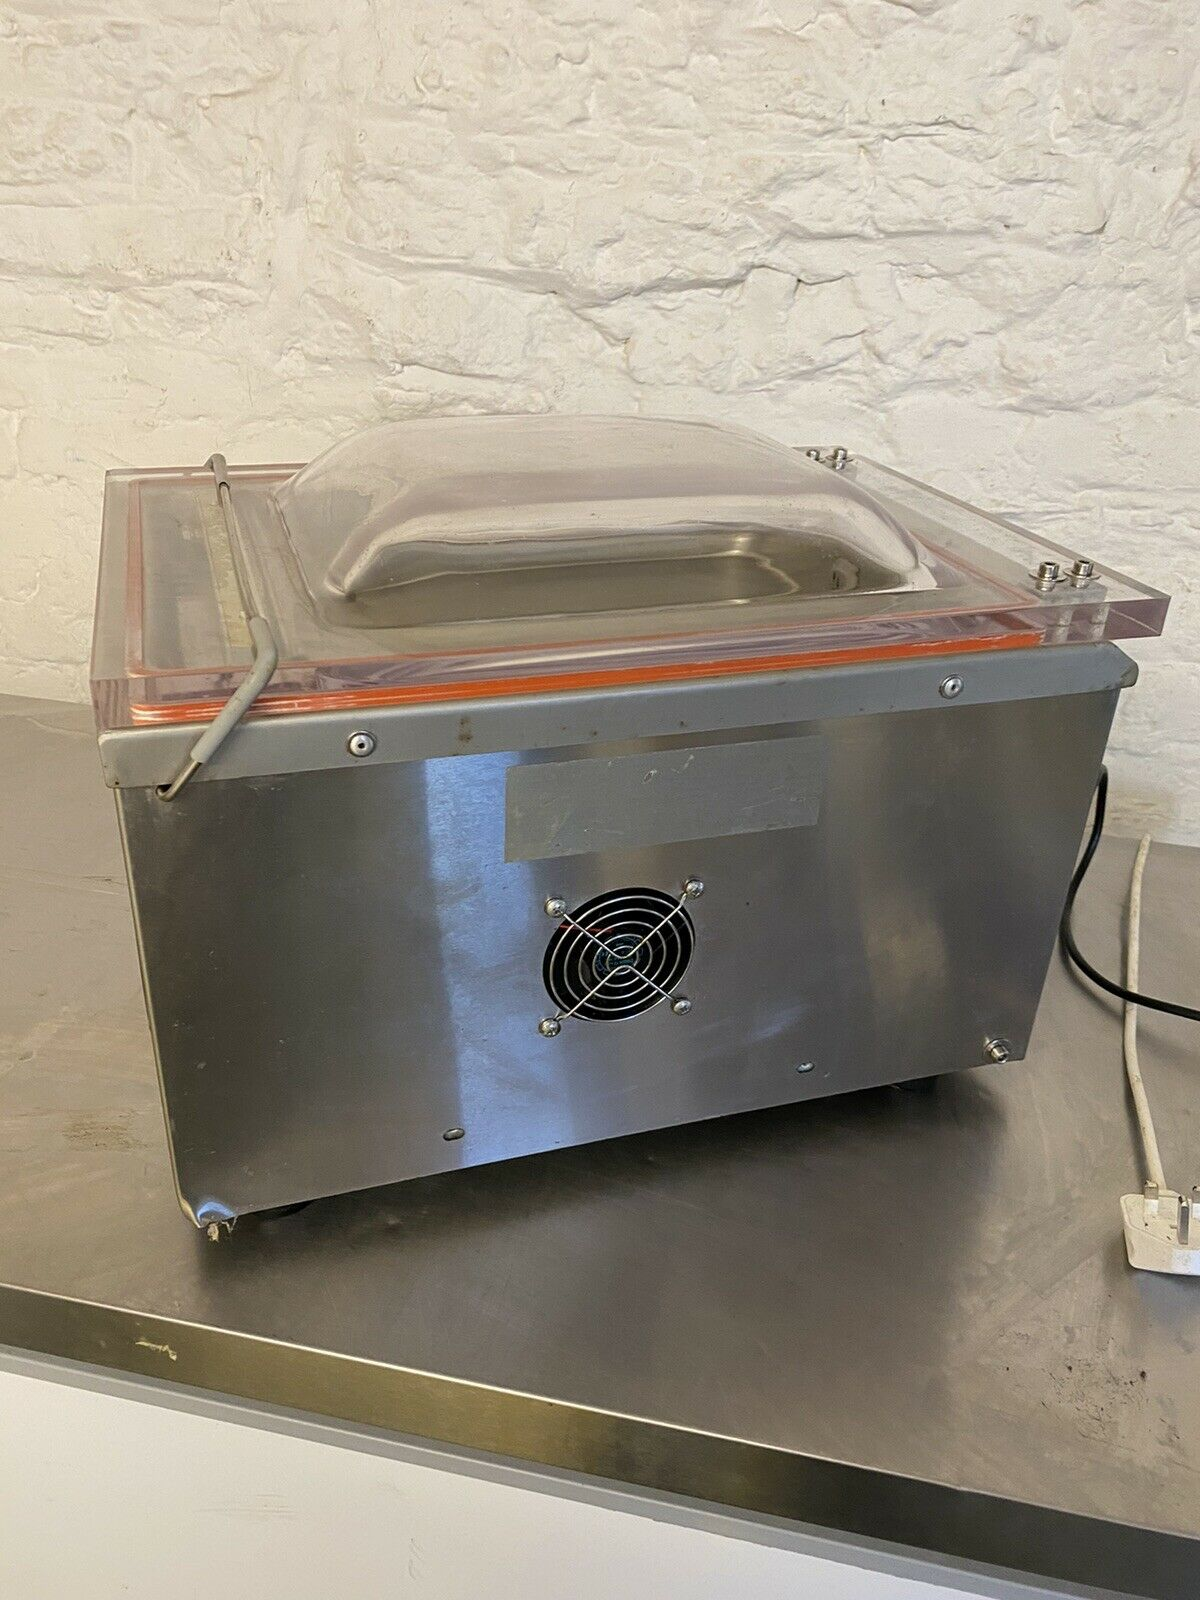 Economical vacuum packing machine for sale. Home and business use